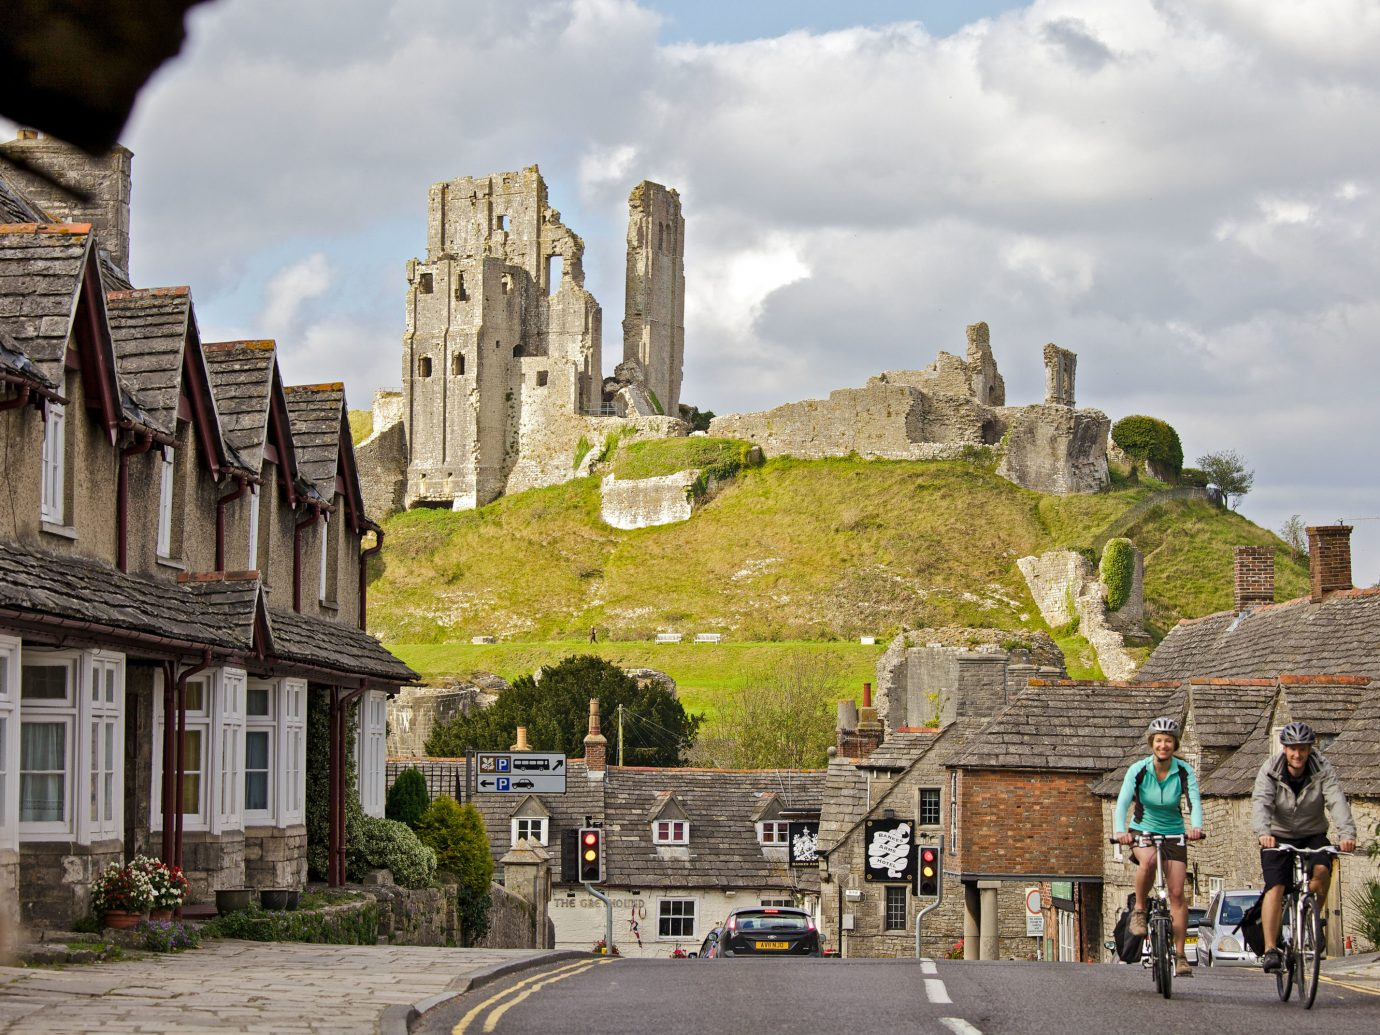 Romance Trip Ideas Weekend Getaways sky outdoor building Town City wall castle tree street history Village Ruins facade medieval architecture road stone